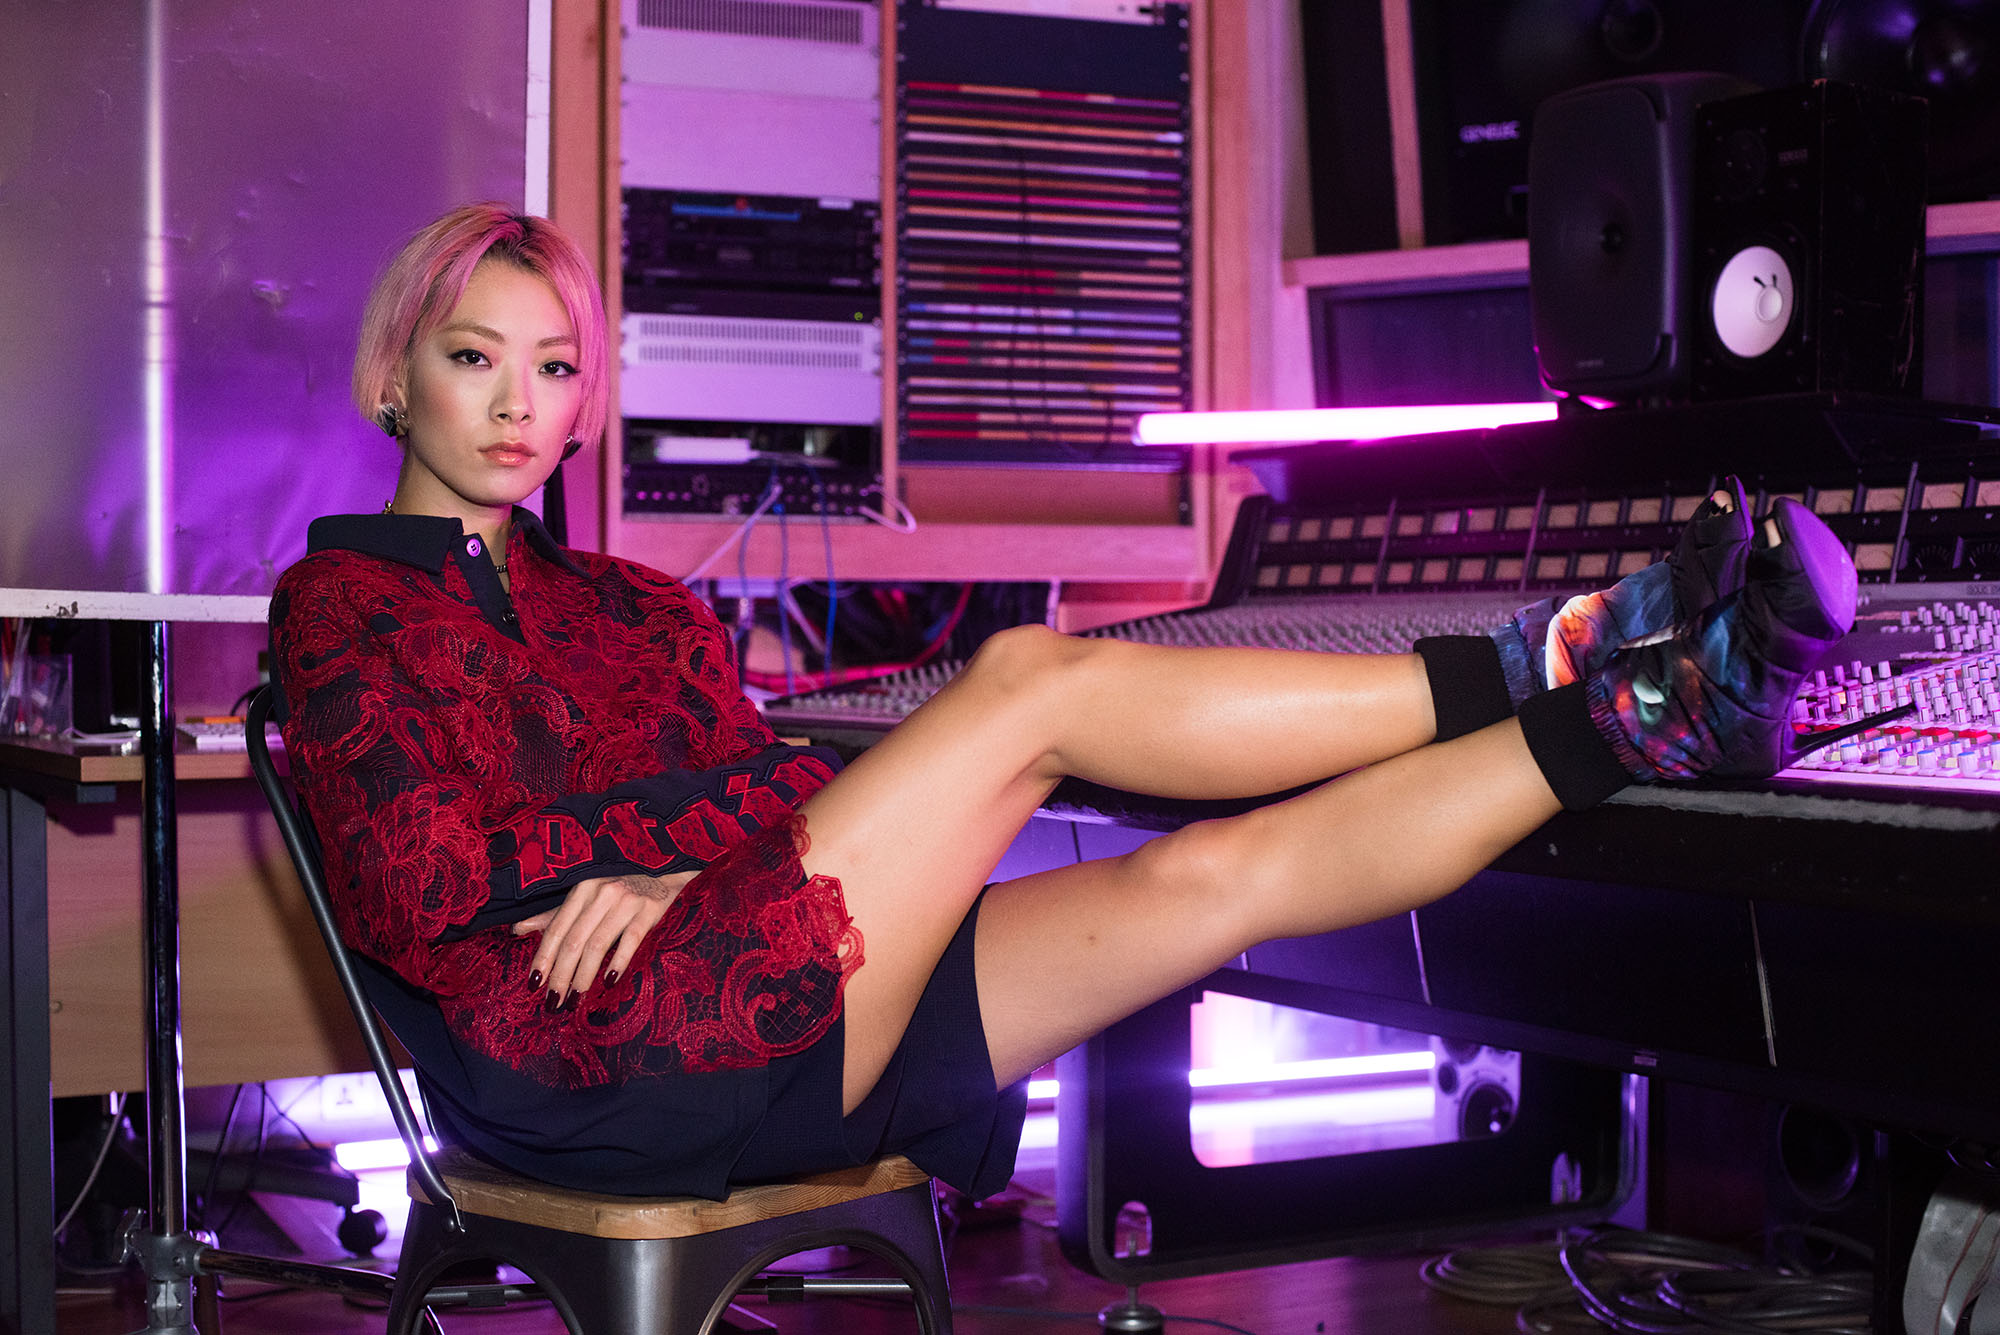 Discover our collaboration with music singer Rina Sawayama